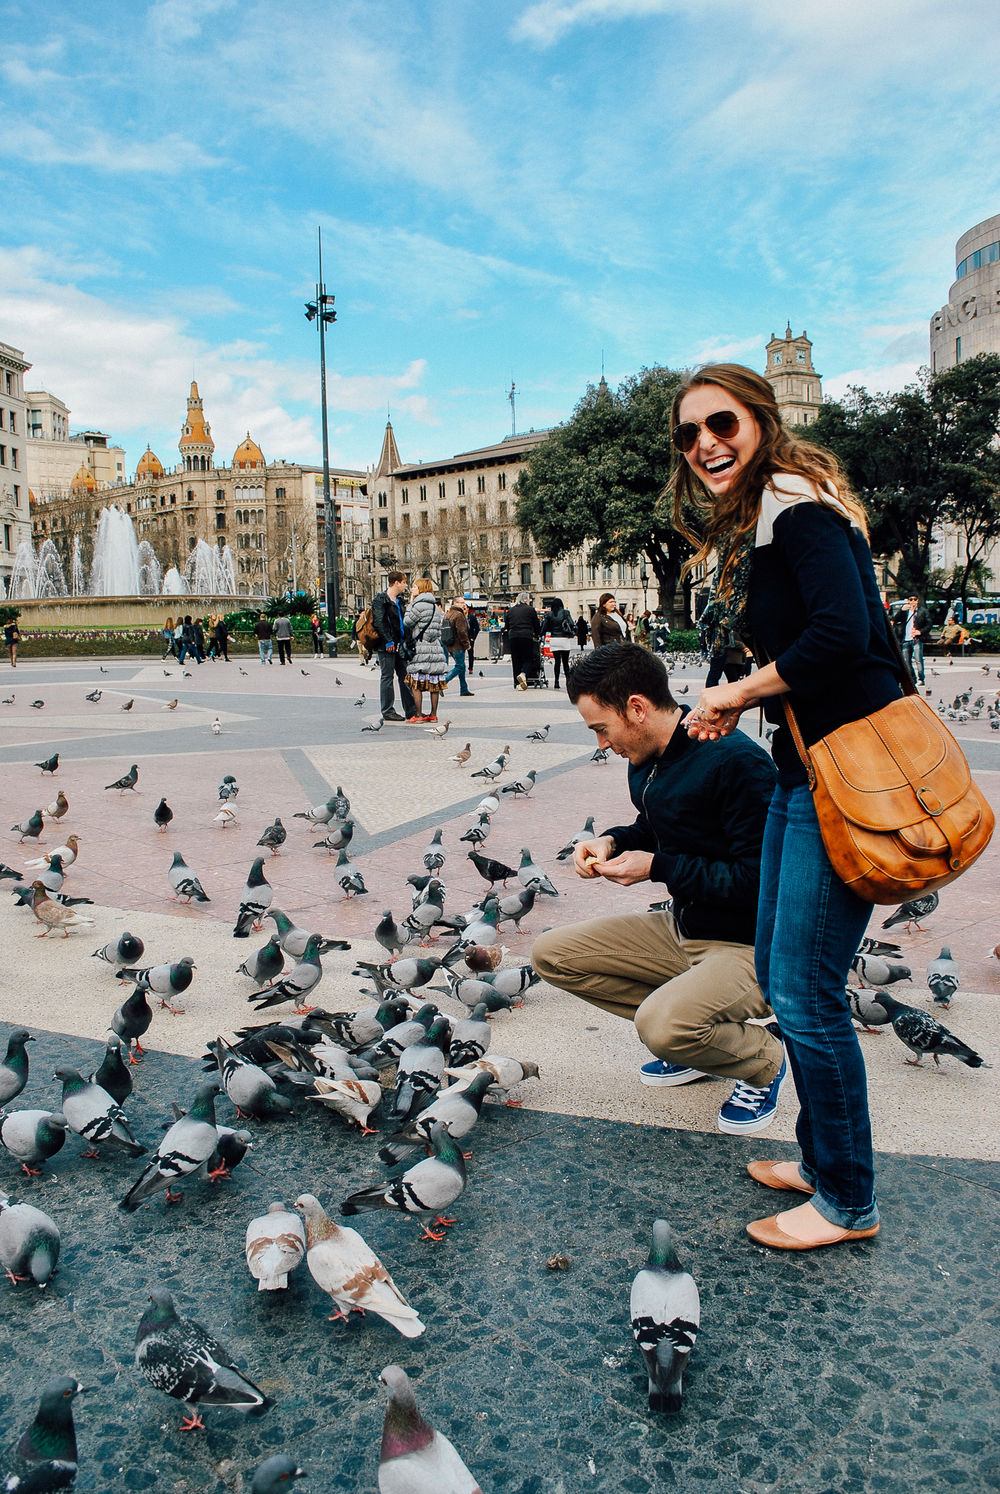 Feeding pigeons just because